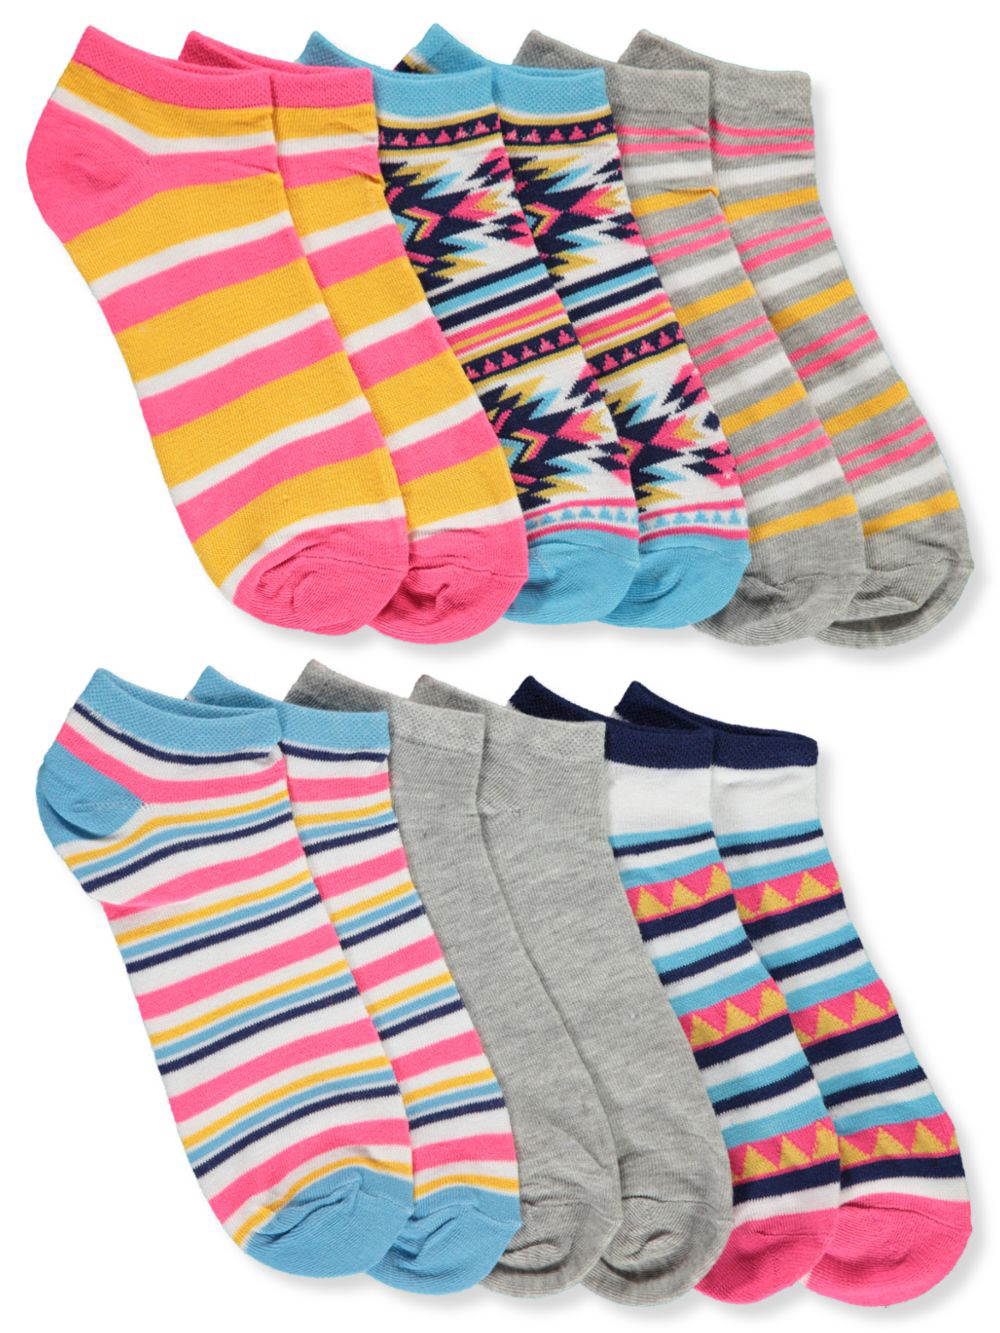 Toddler and Youth Socks